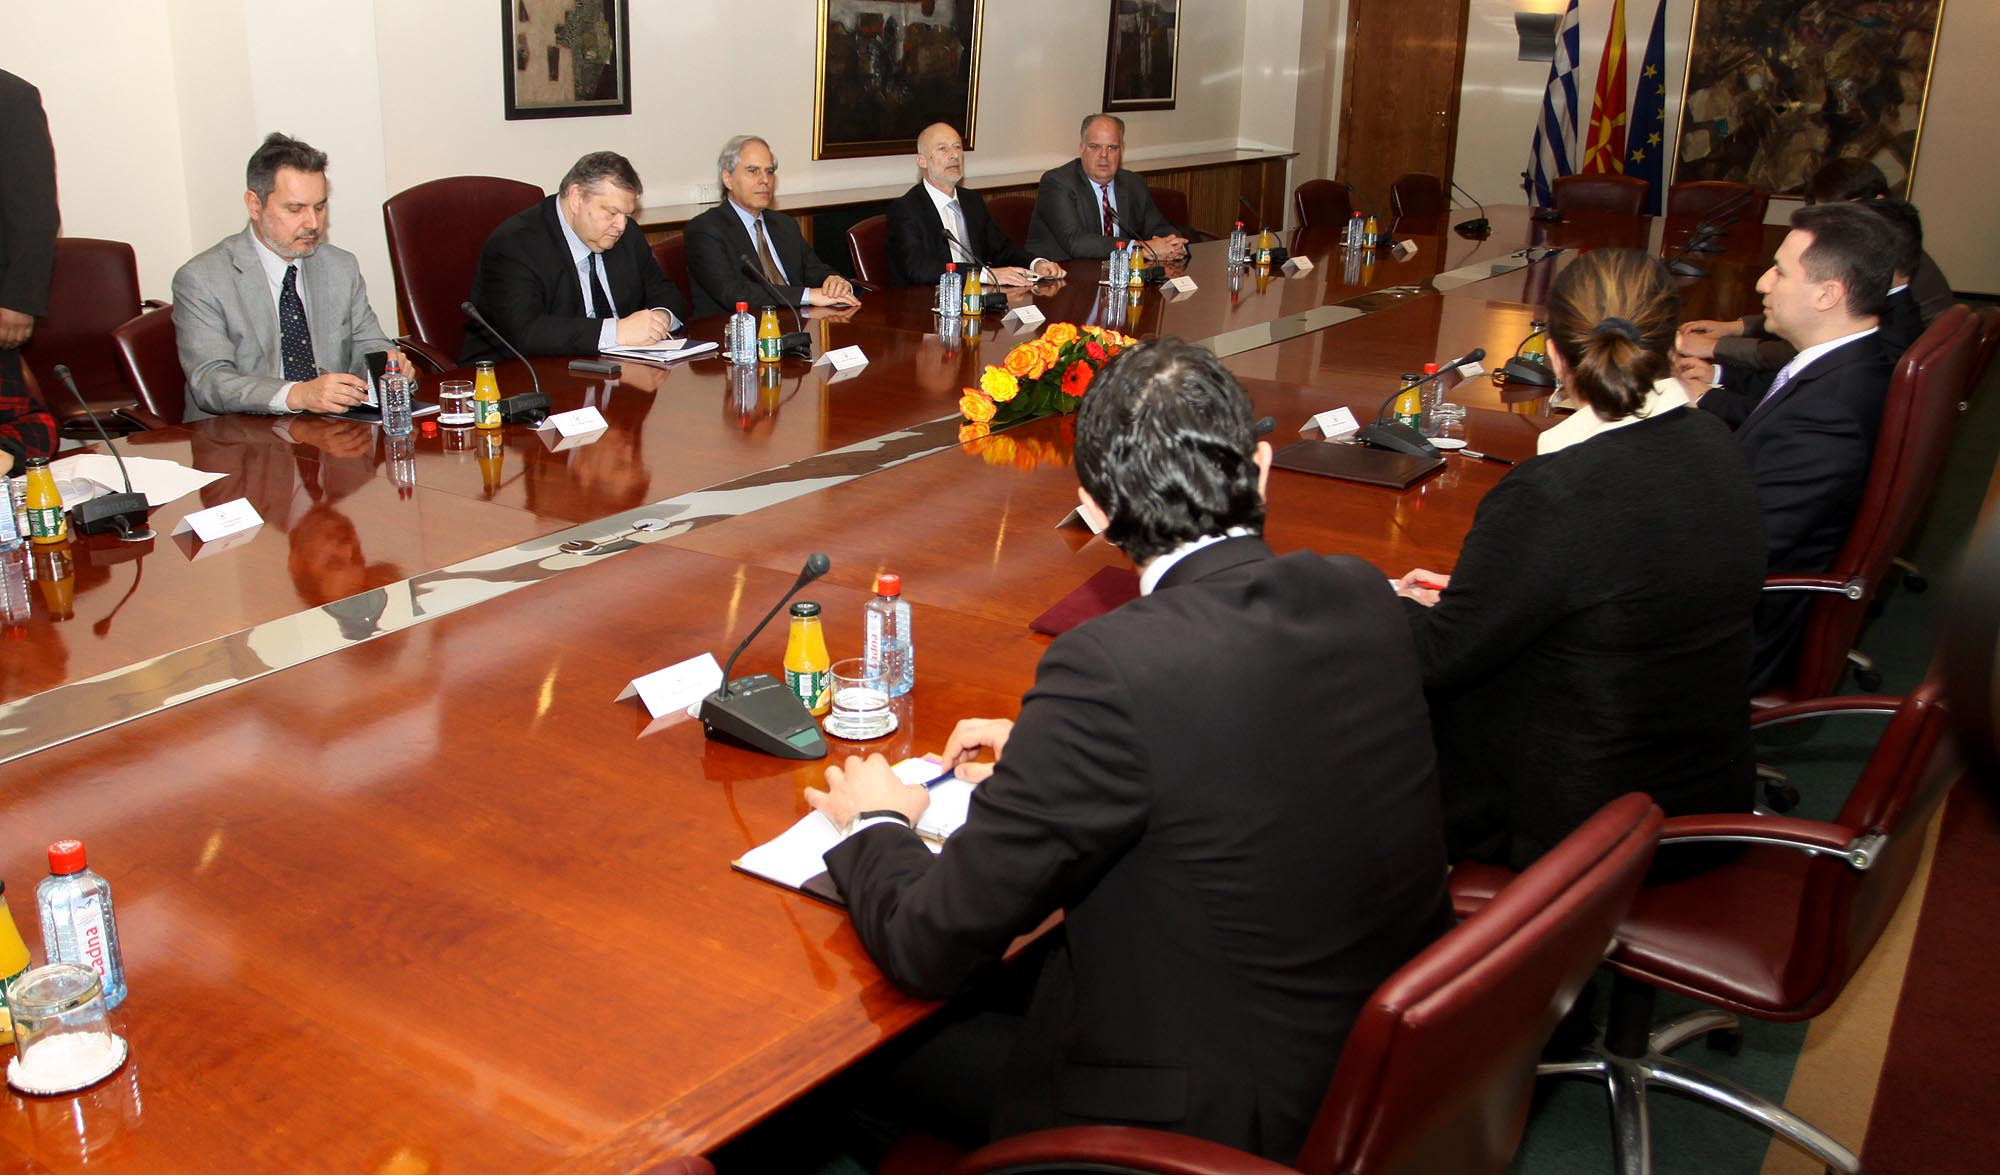 Venizelos: Skopje has a disposition to improve bilateral relations